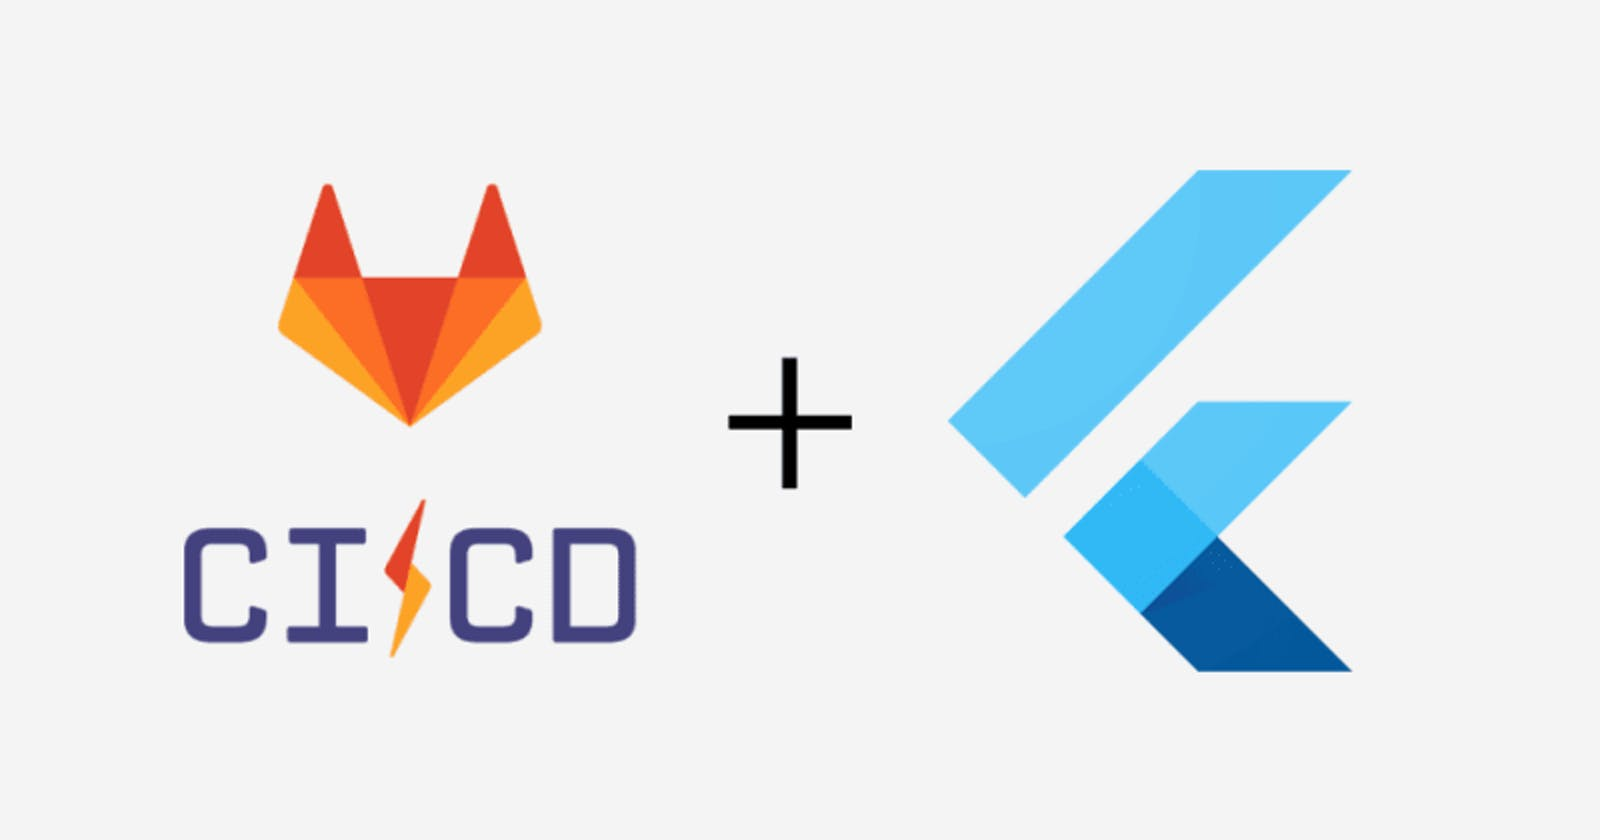 Run checks for Flutter projects with GitLab CI